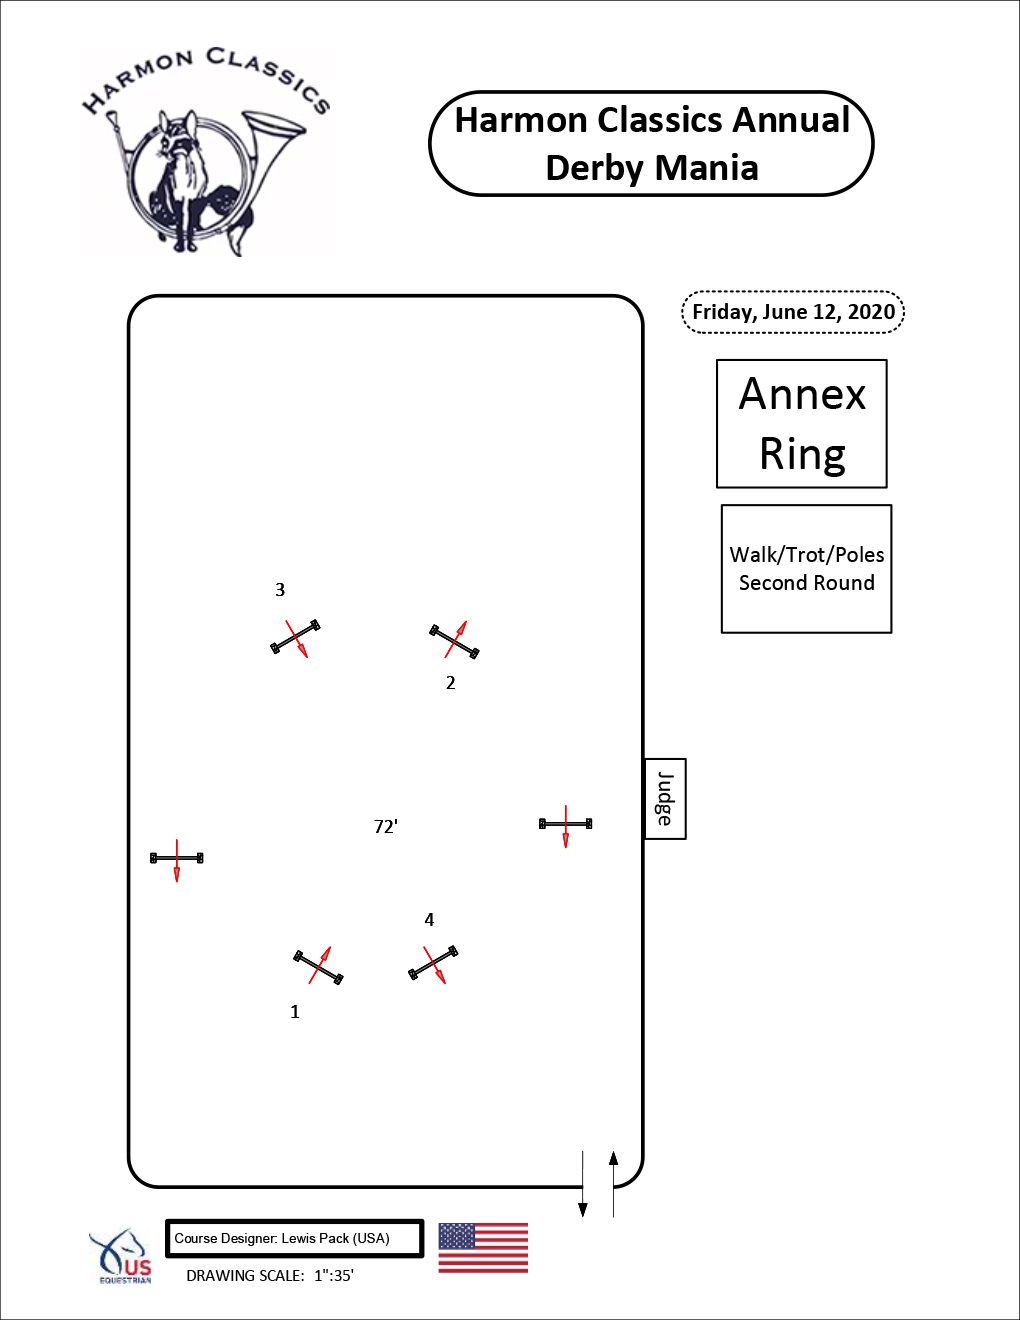 Annex-Ring-Friday6-12-Walk-Trot-Poles-Second-Round-Harmon-Classics-Derby-Mania